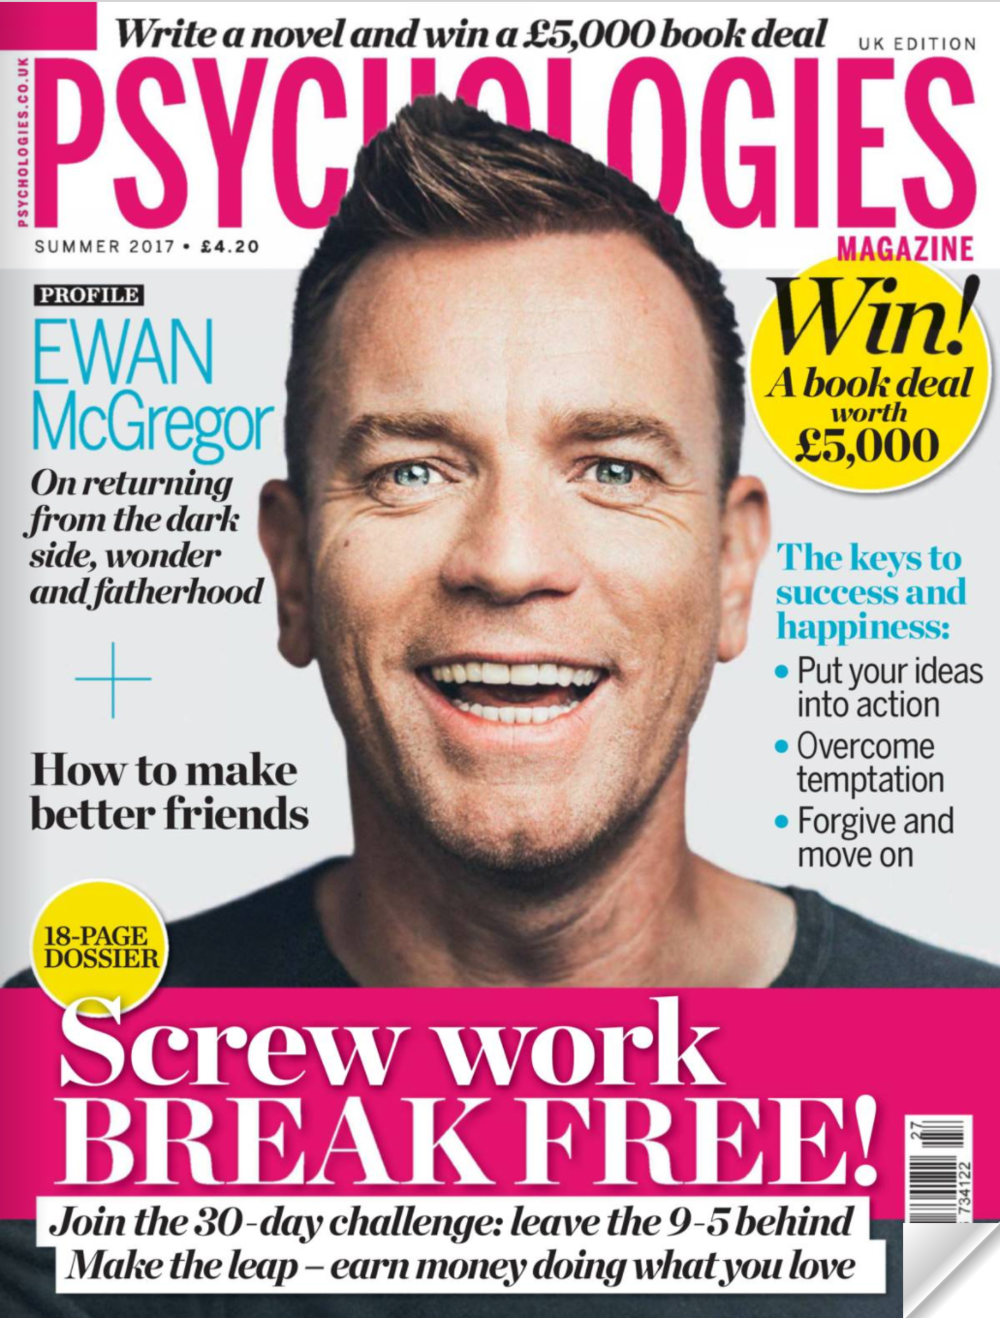 interview in psychologies magazine - ways into wonder